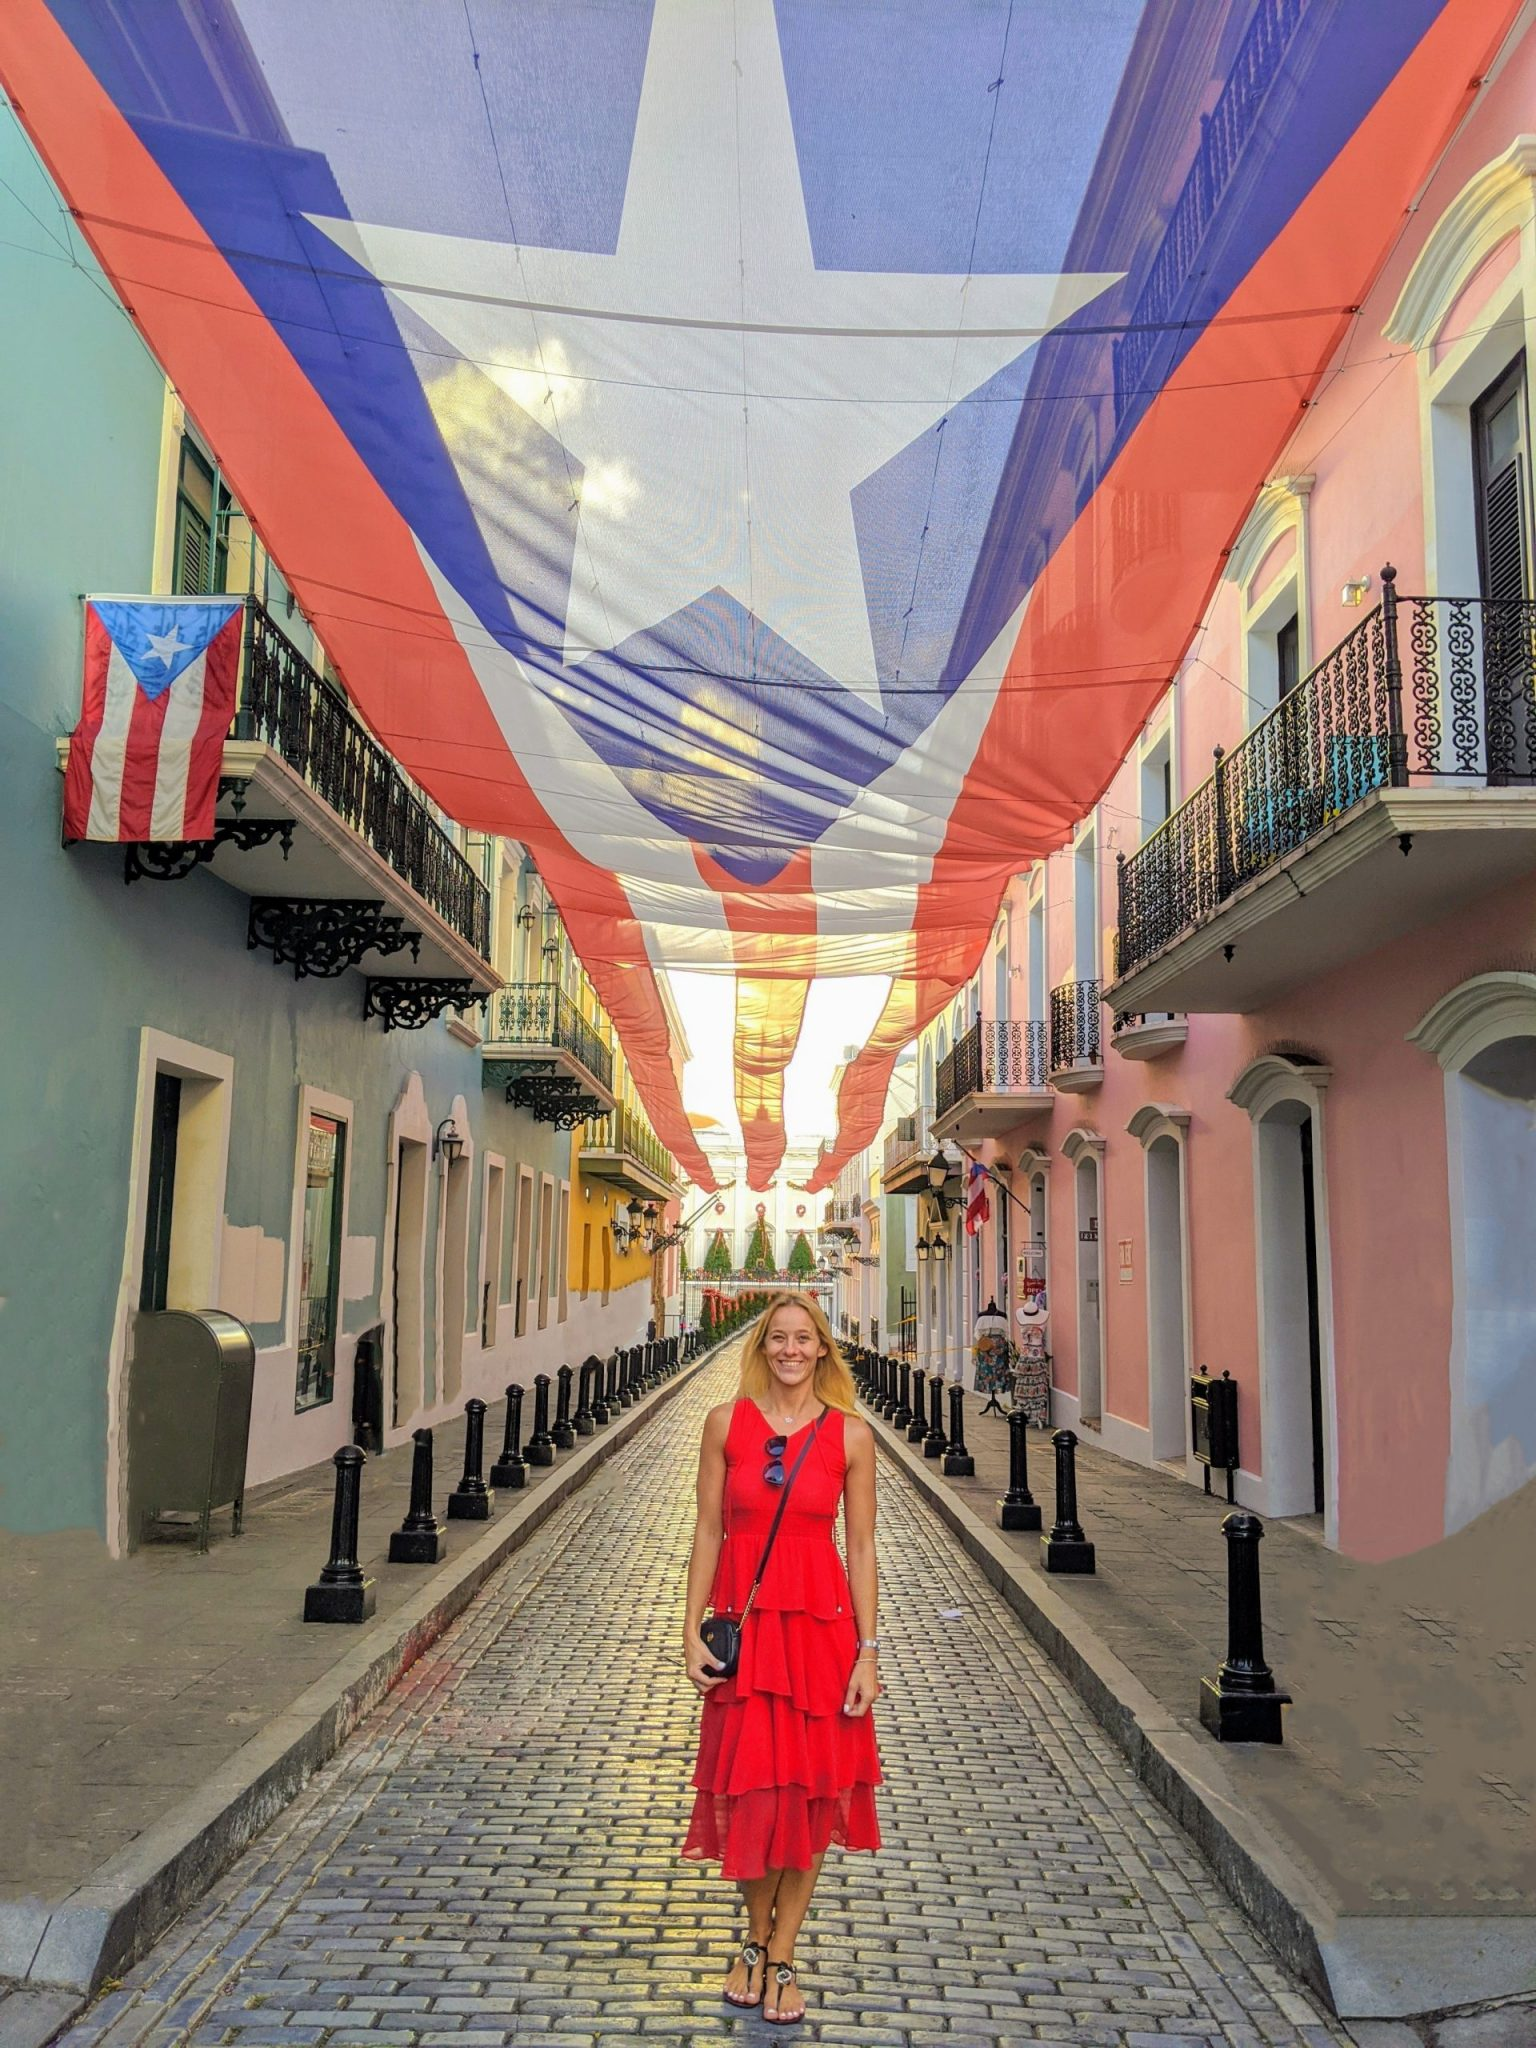 Anna in front of a large Puerto Rican flag hanging above an entire street after her relocation